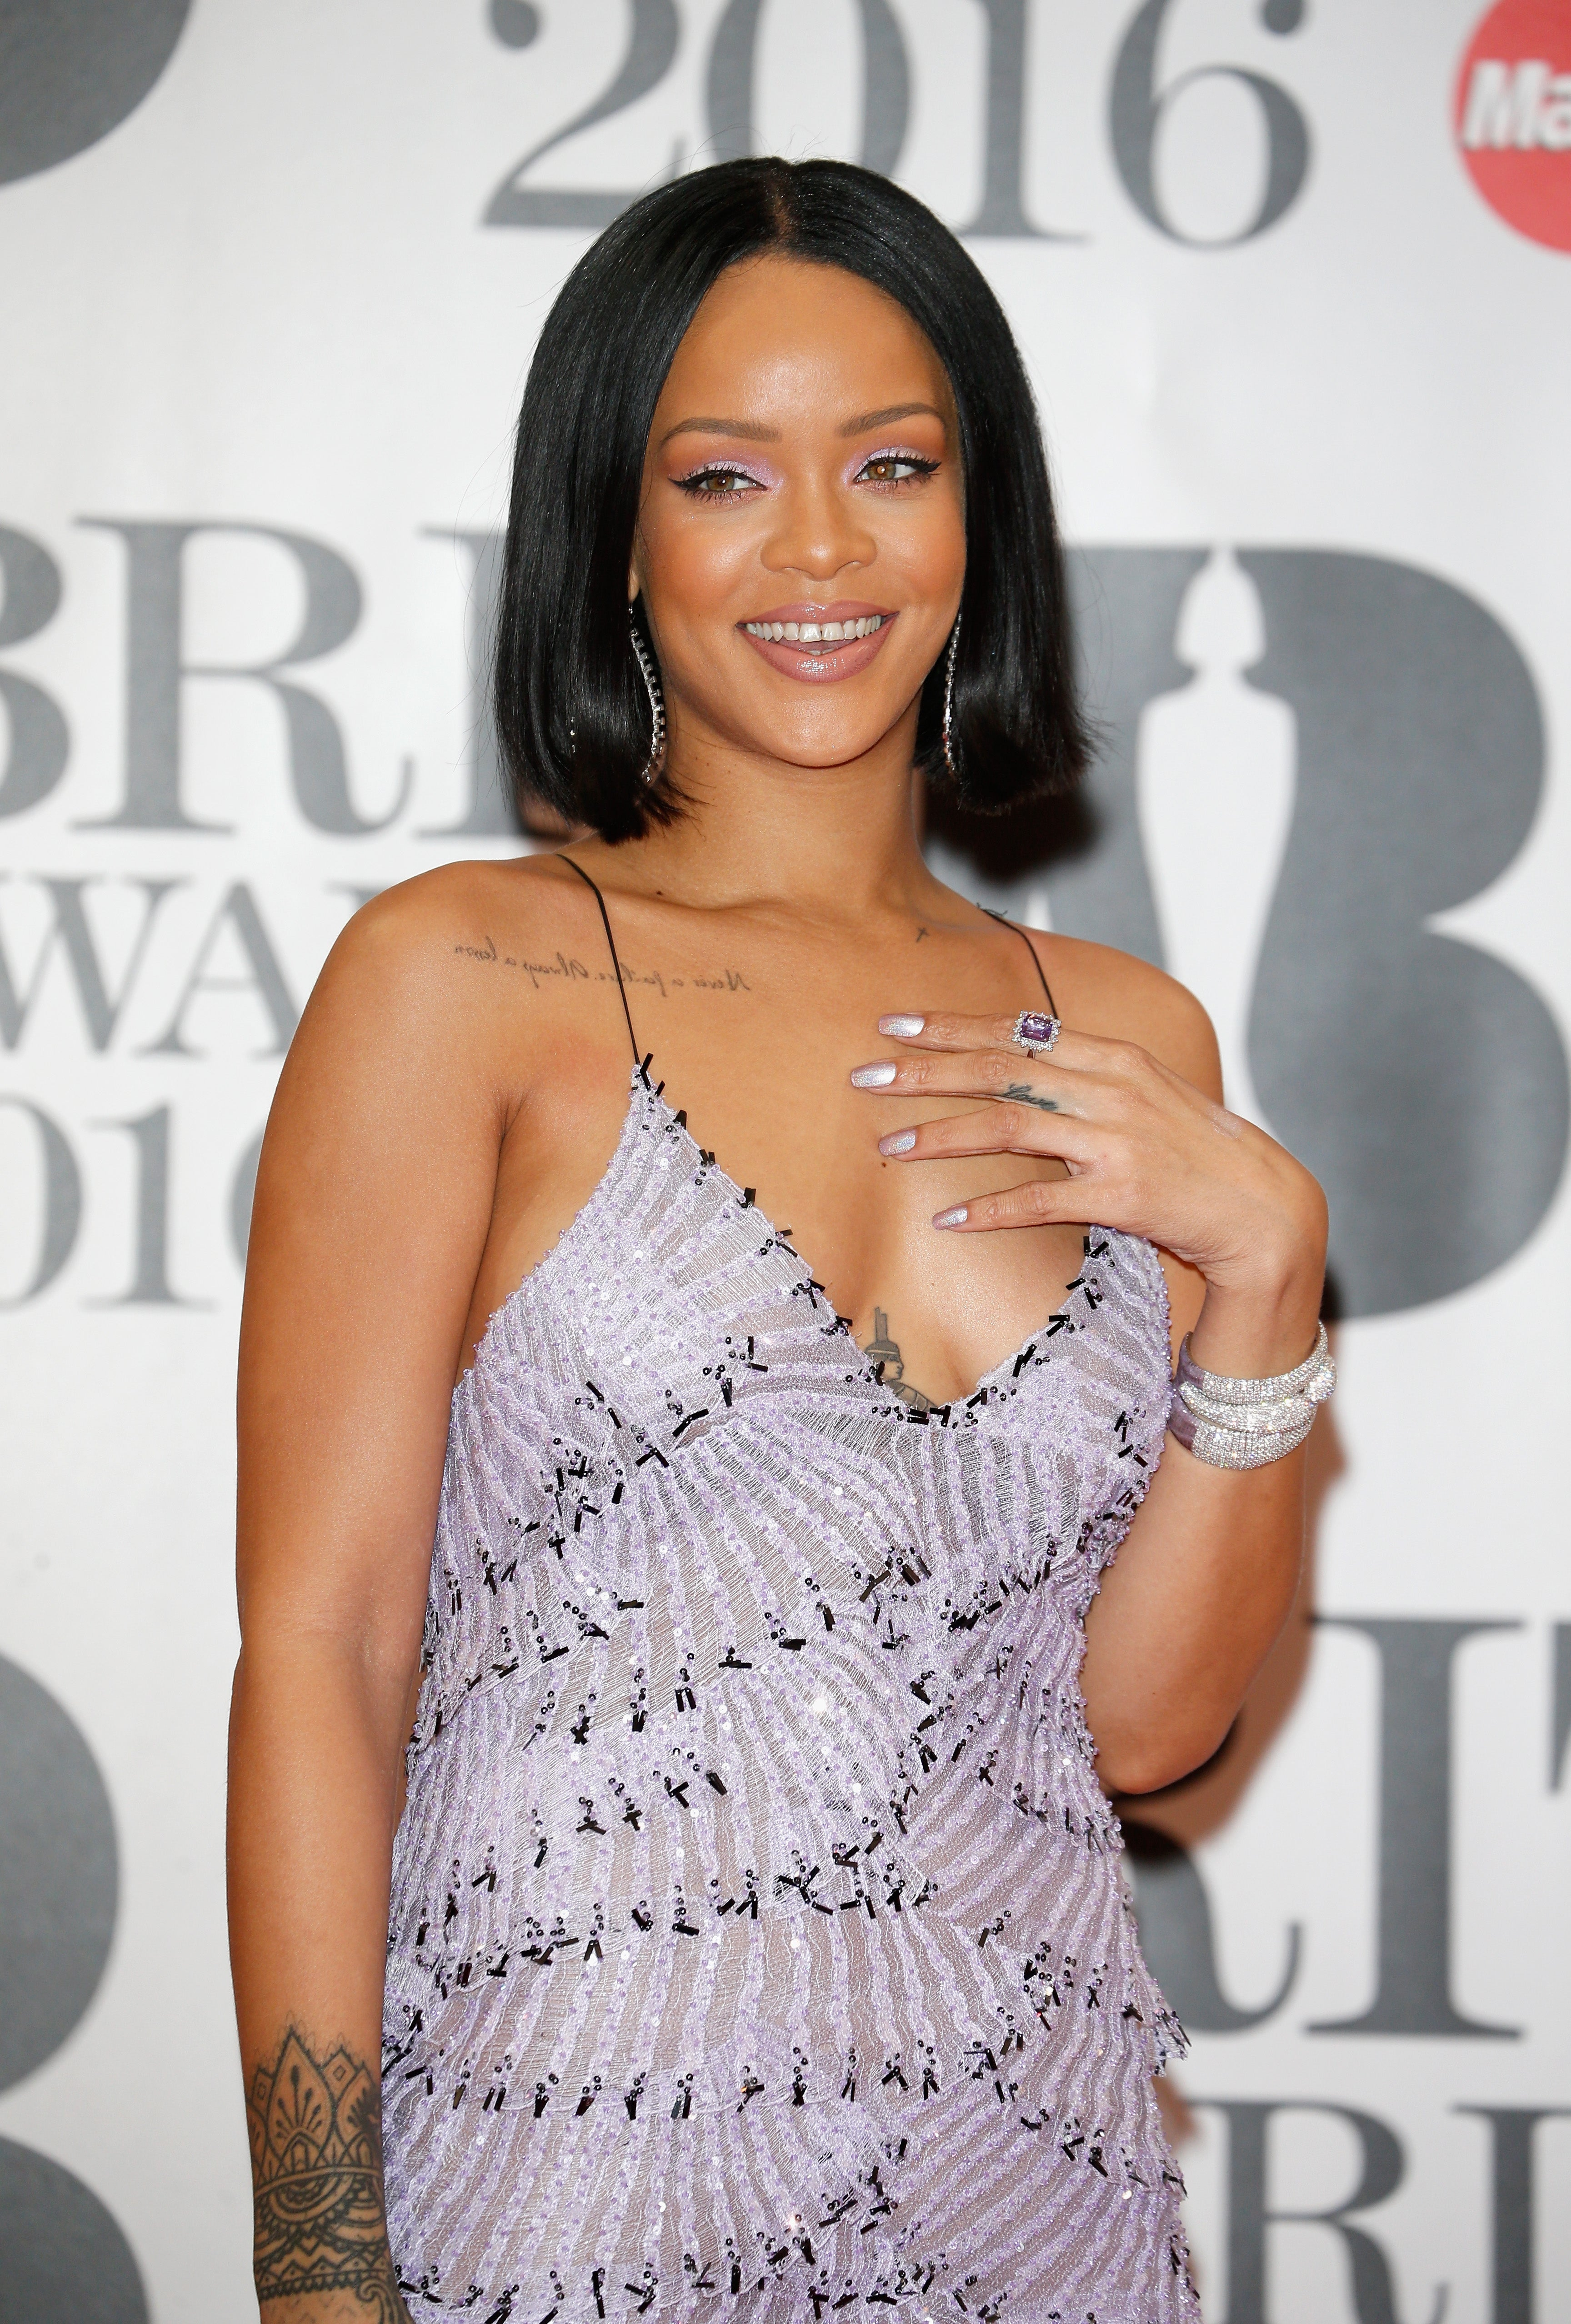 Some of Rihanna's Biggest Hits Have Been Turned Into Lullabies